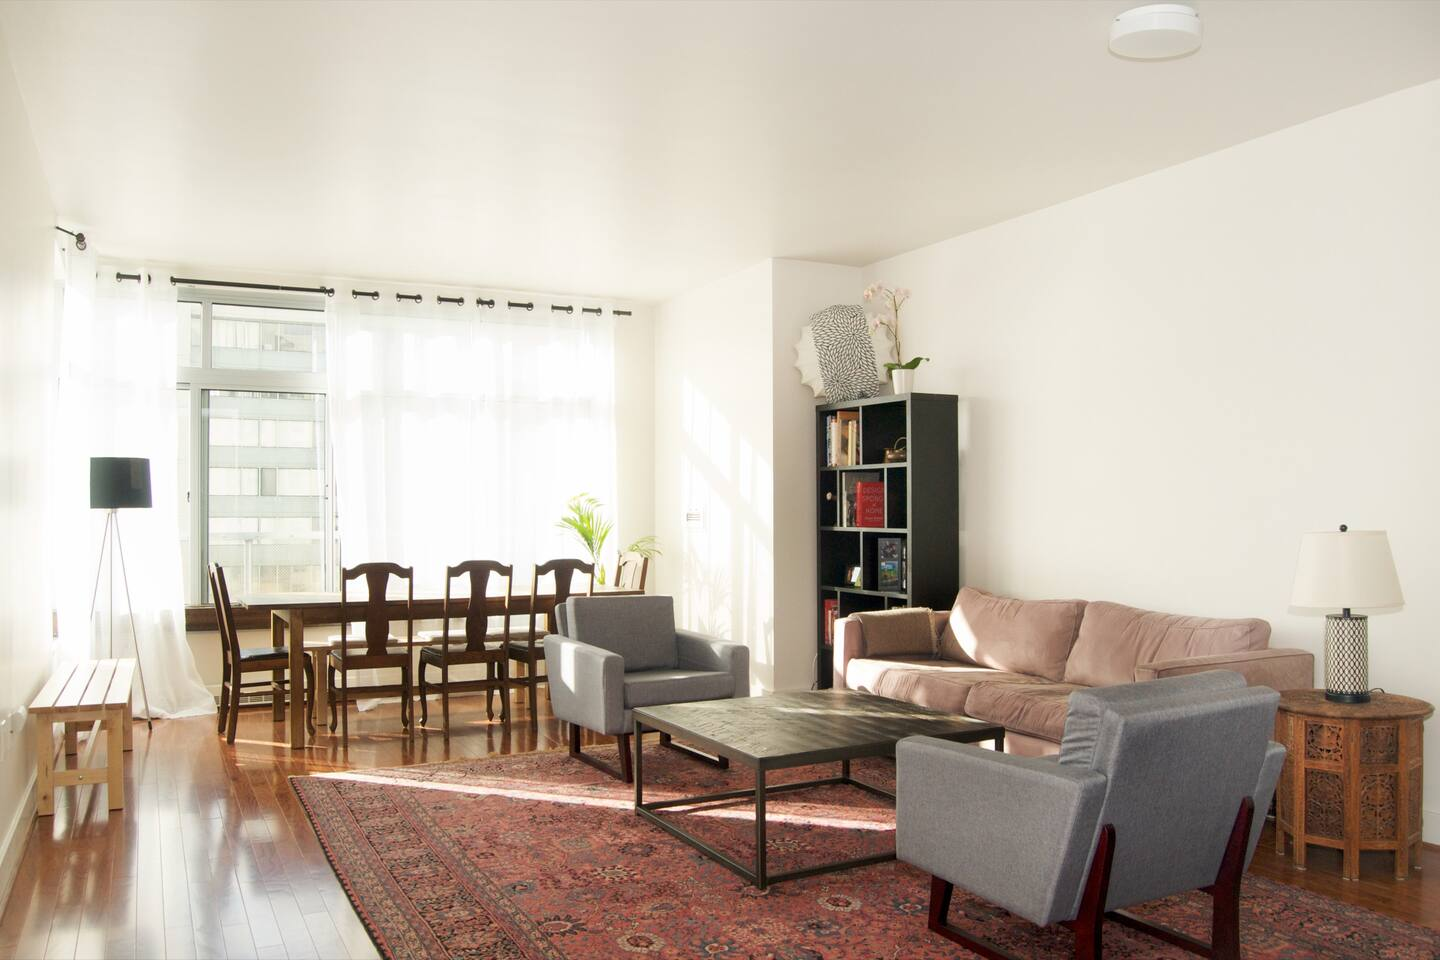 Spacious and light filled living room